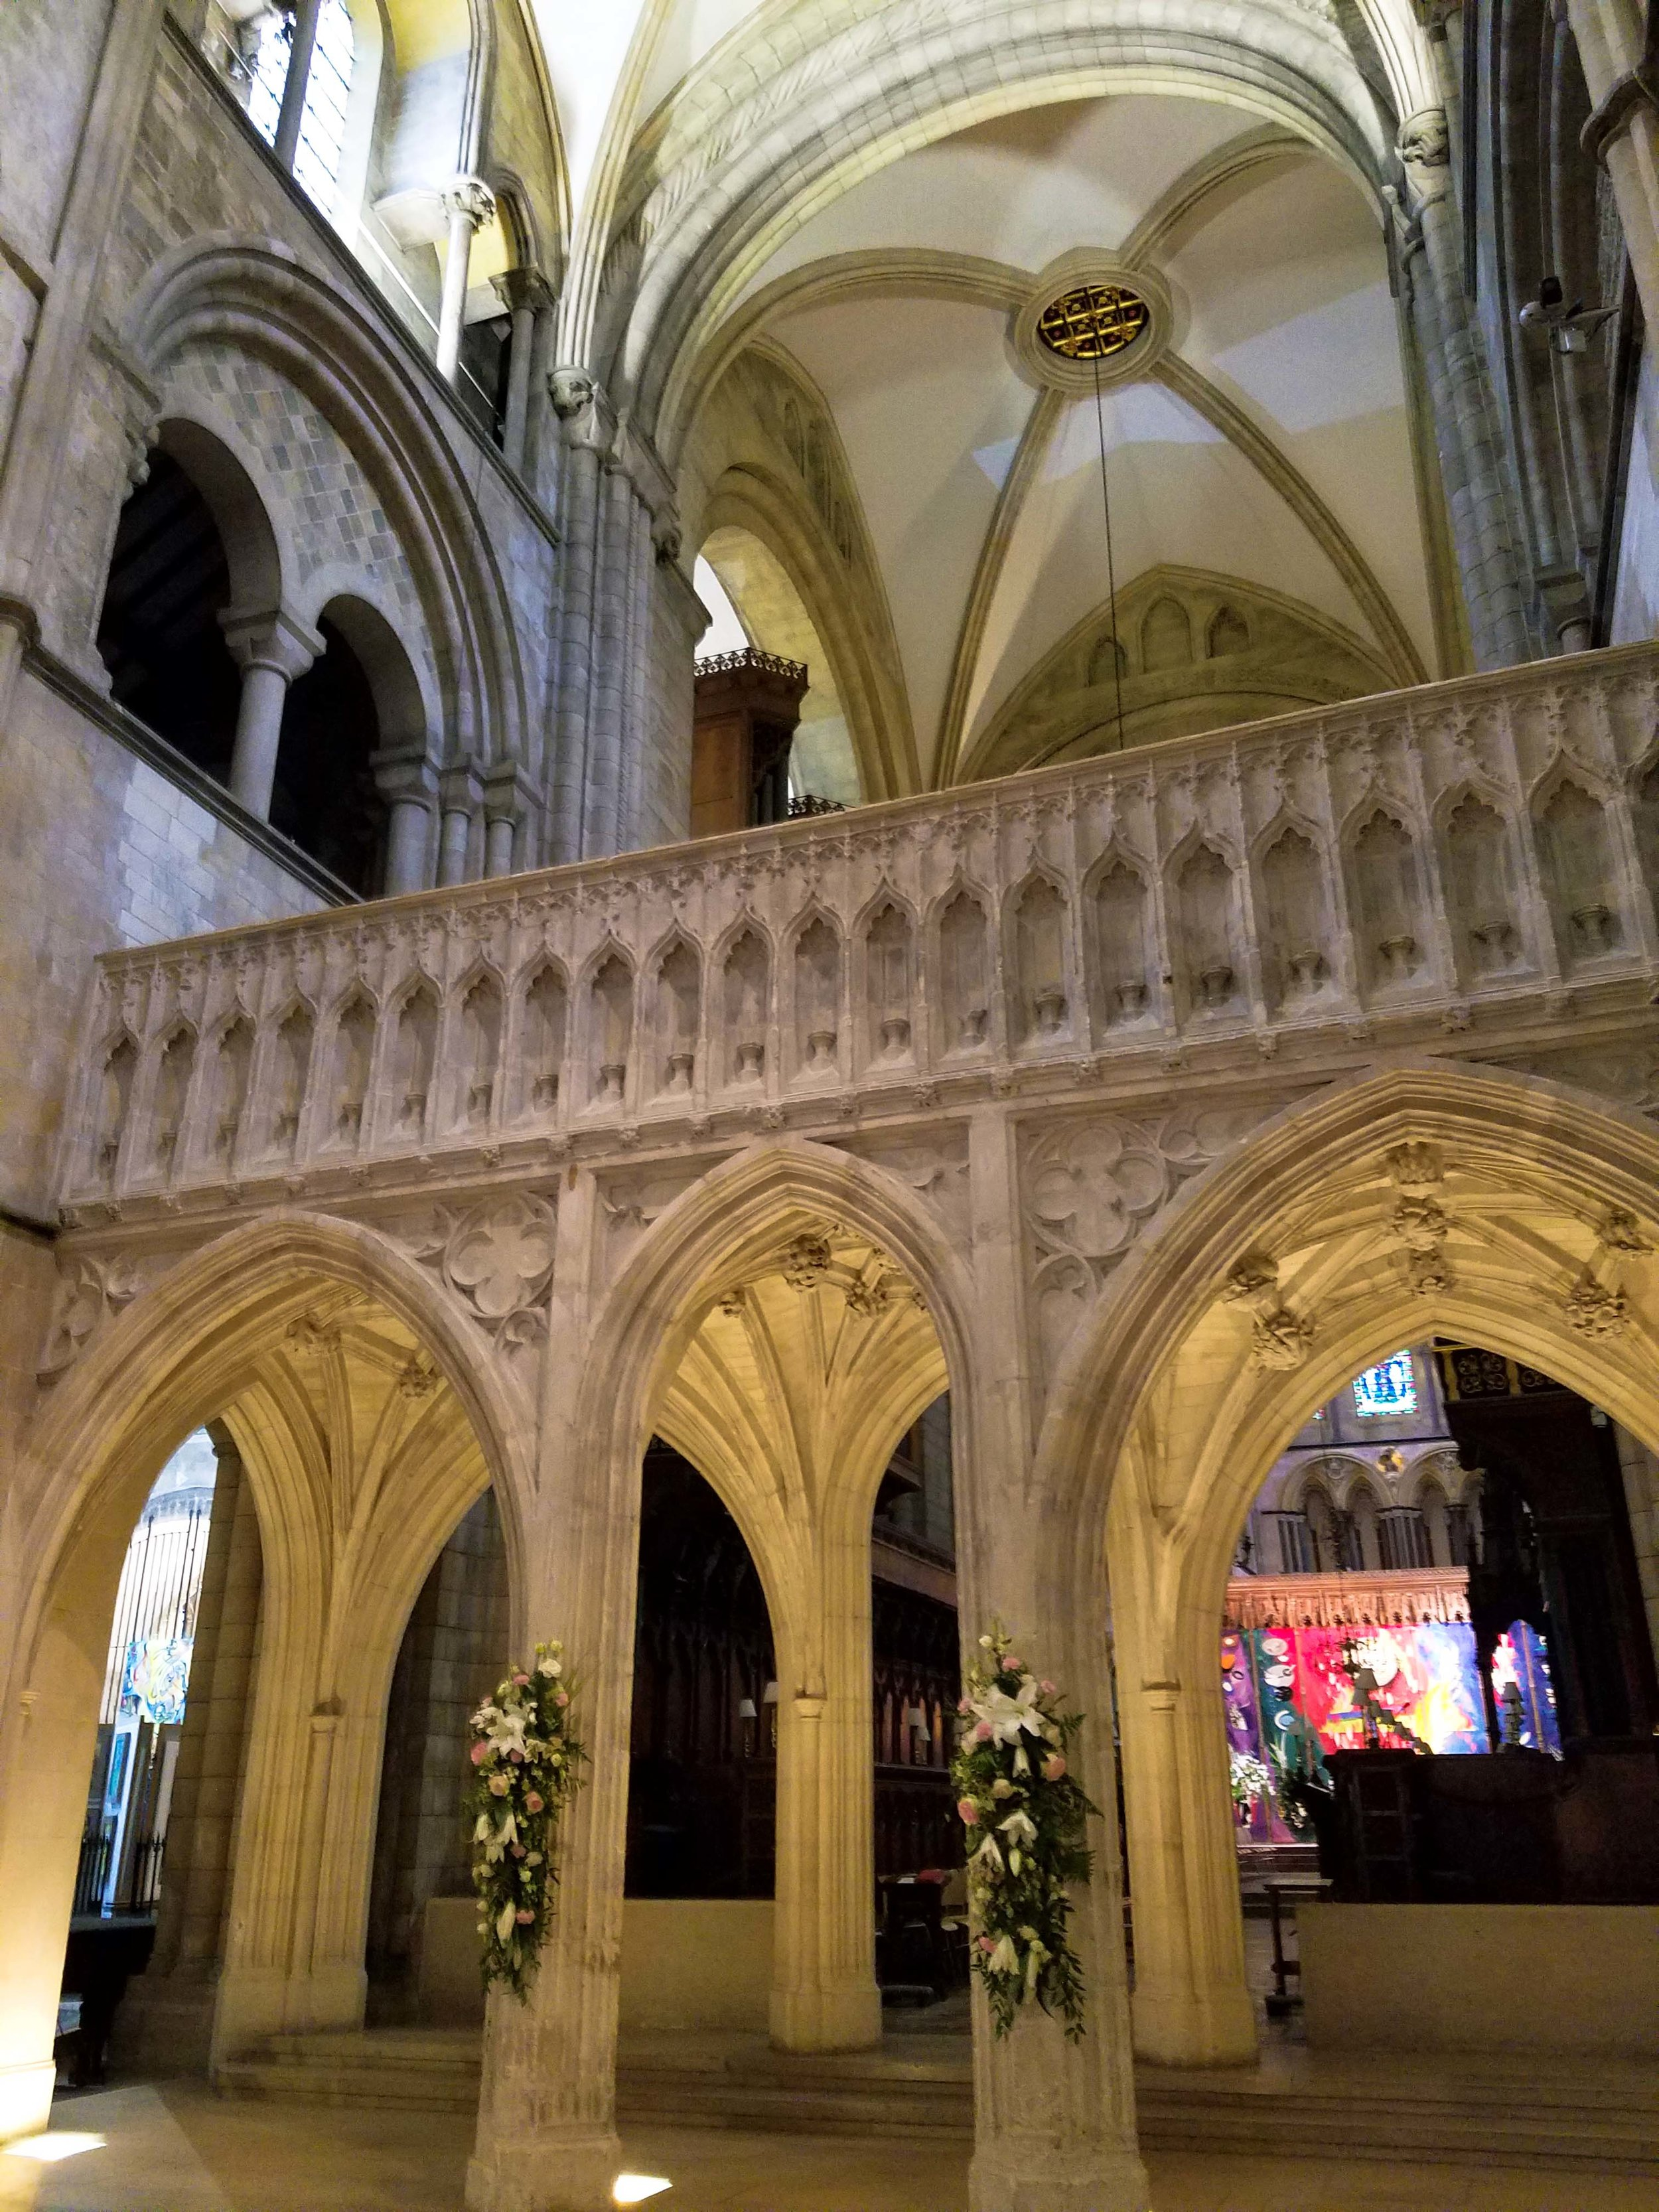 Choir screen at Chichester Cathedral